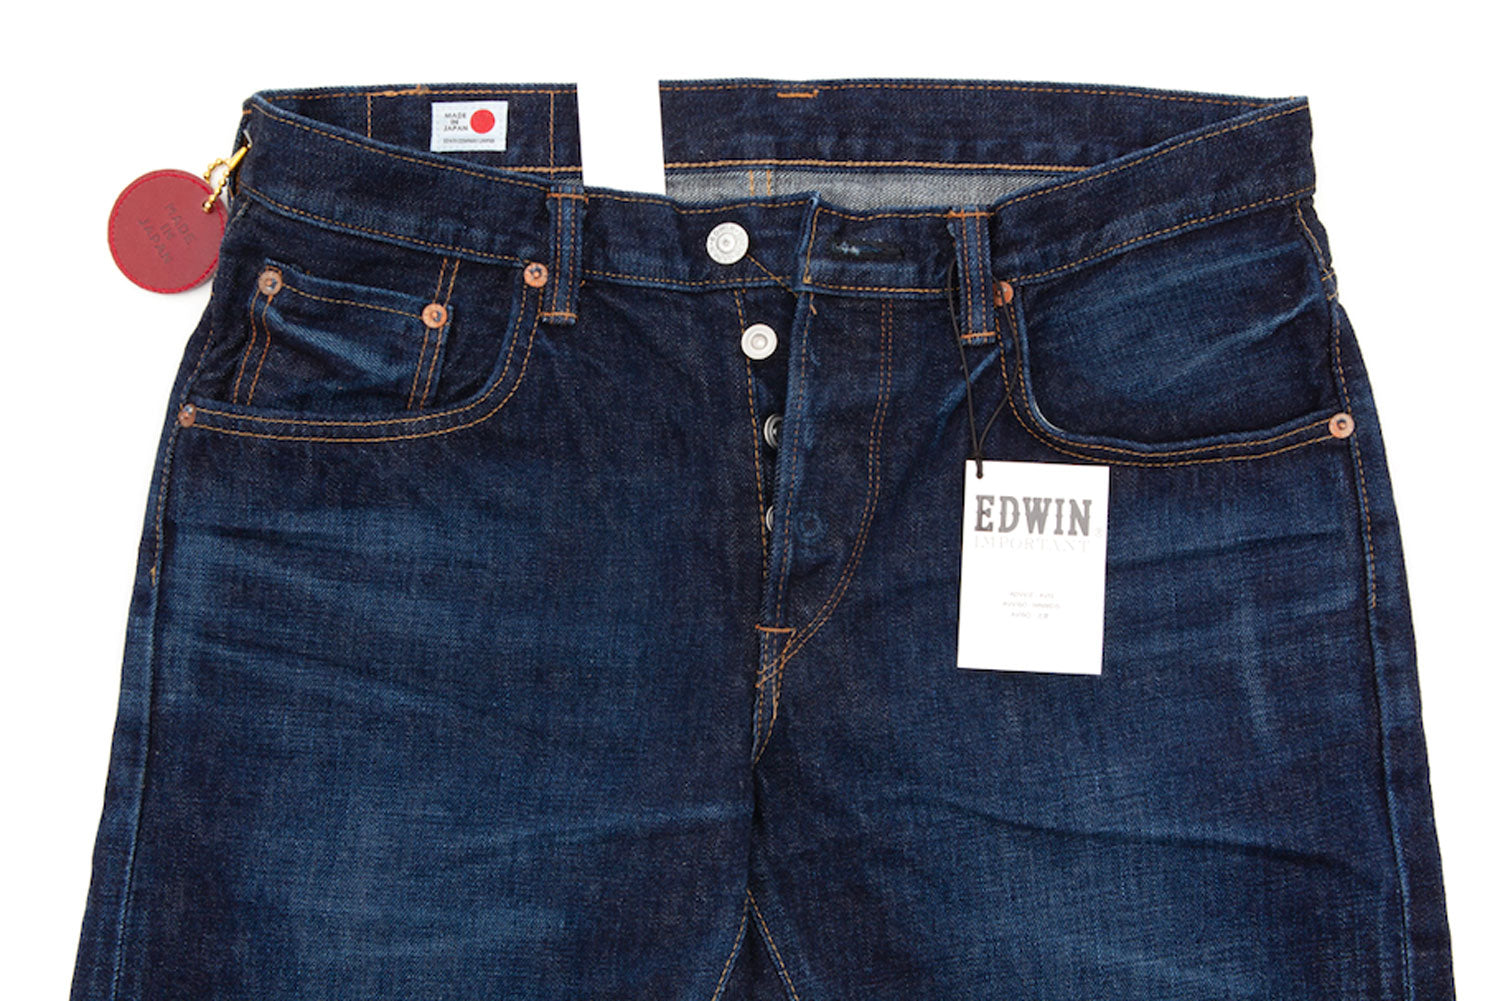 Edwin Jeans - Regular Tapered - Rainbow Selvage Denim - Regent Tailoring